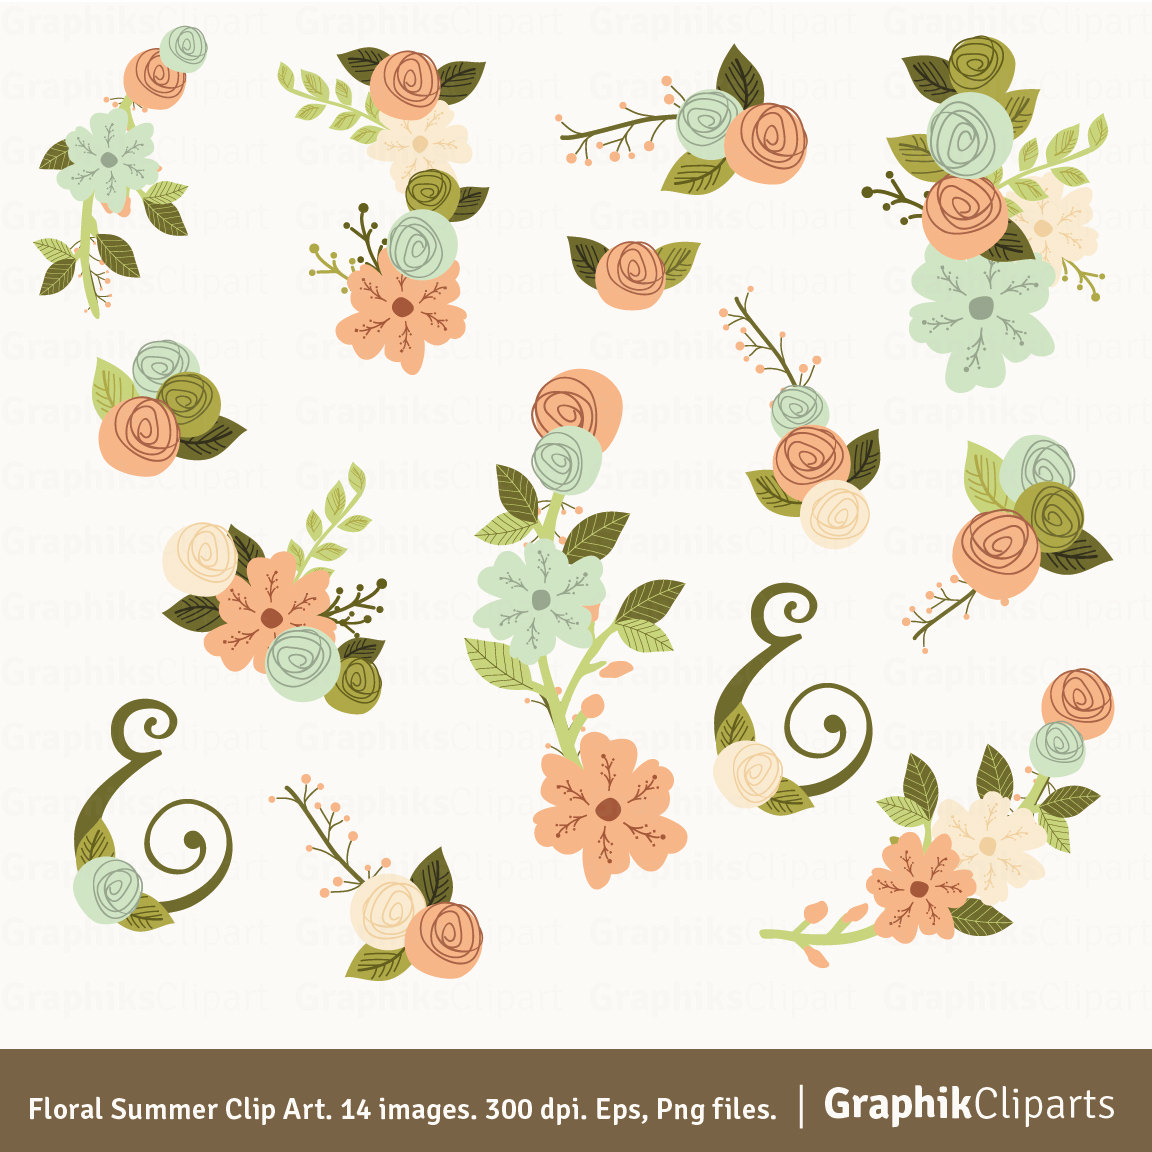 Ranuncula clipart hand drawn flower Clipart Coral Summer Art Etsy